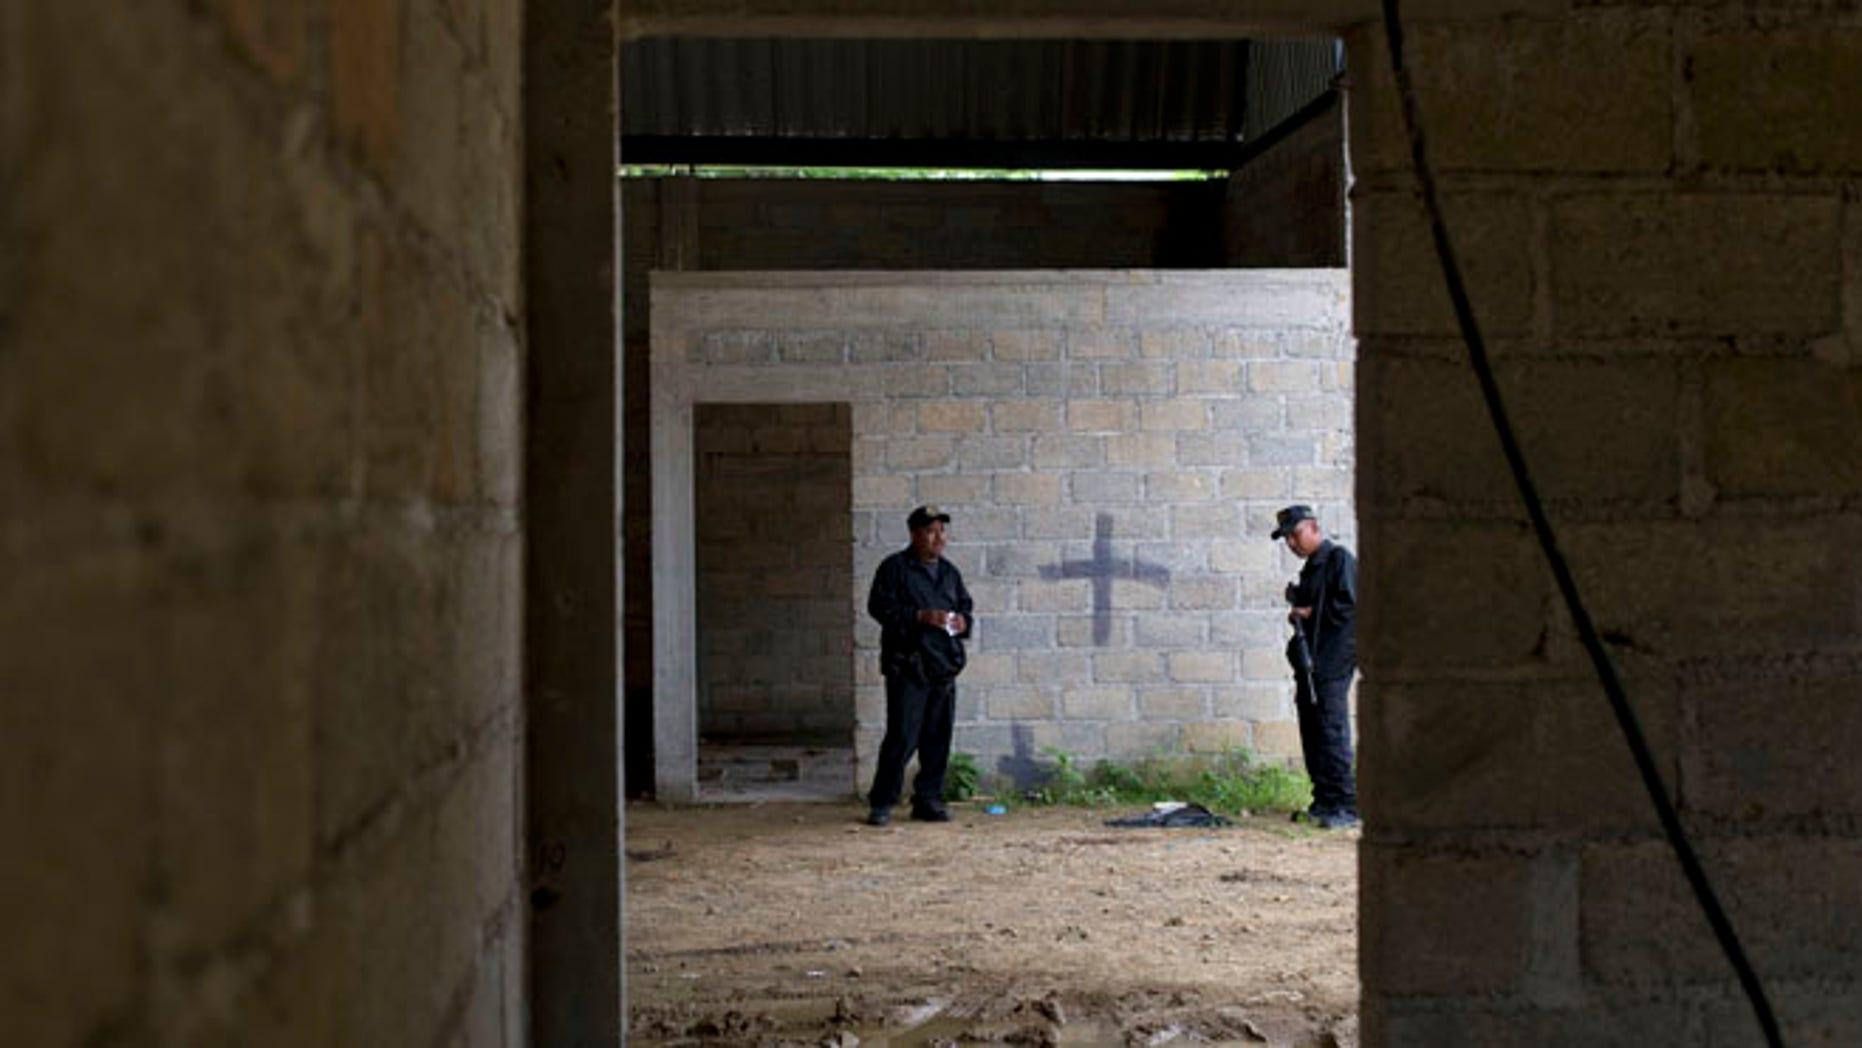 FILE - In this July 3, 2014 file photo, state police stand inside a warehouse where a black cross marks a wall near blood stains on the ground, after a shootout between Mexican soldiers and alleged criminals in Tlatlaya, Mexico. A Mexican civilian court has freed the final three soldiers accused of homicide in the 2014 incident in which suspects were allegedly executed after they surrendered. The federal Attorney Generalâs Office said late Friday, May 13, 2014, the three were absolved of charges of homicide, cover-up and alteration of evidence. (AP Photo/Rebecca Blackwell, File)